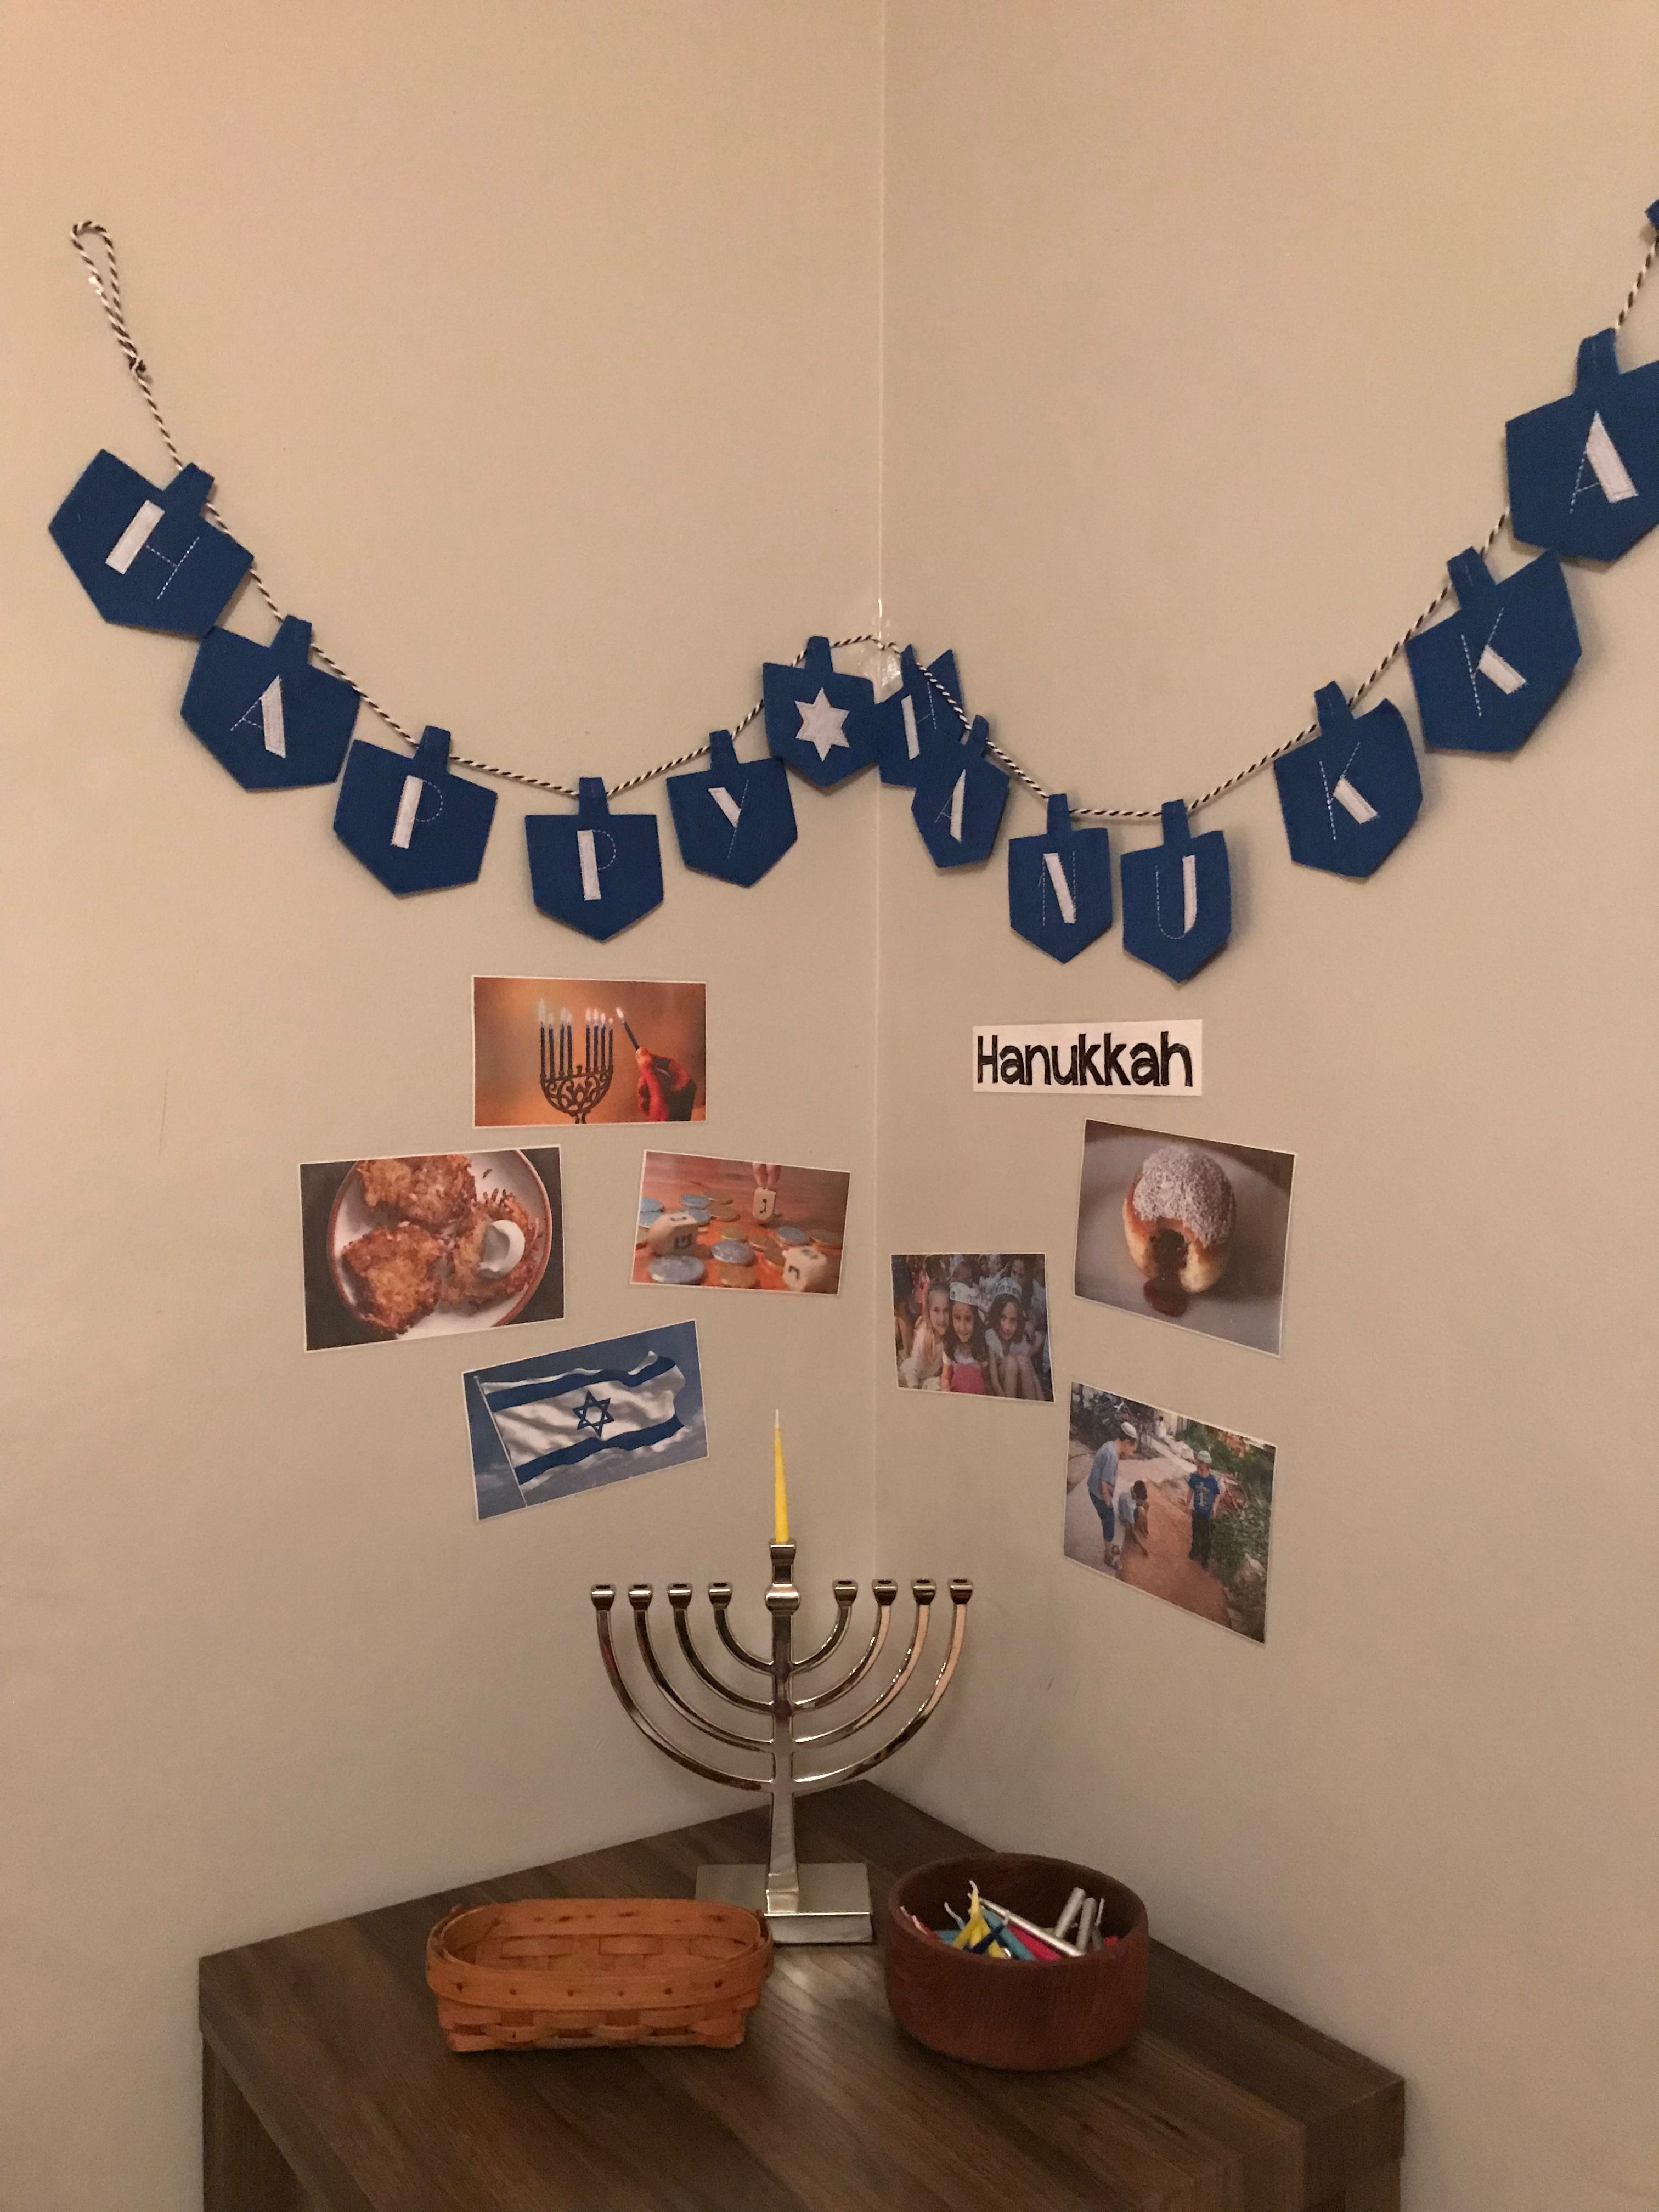 Pin By Bei Bambini On Celebrations Hanukkah